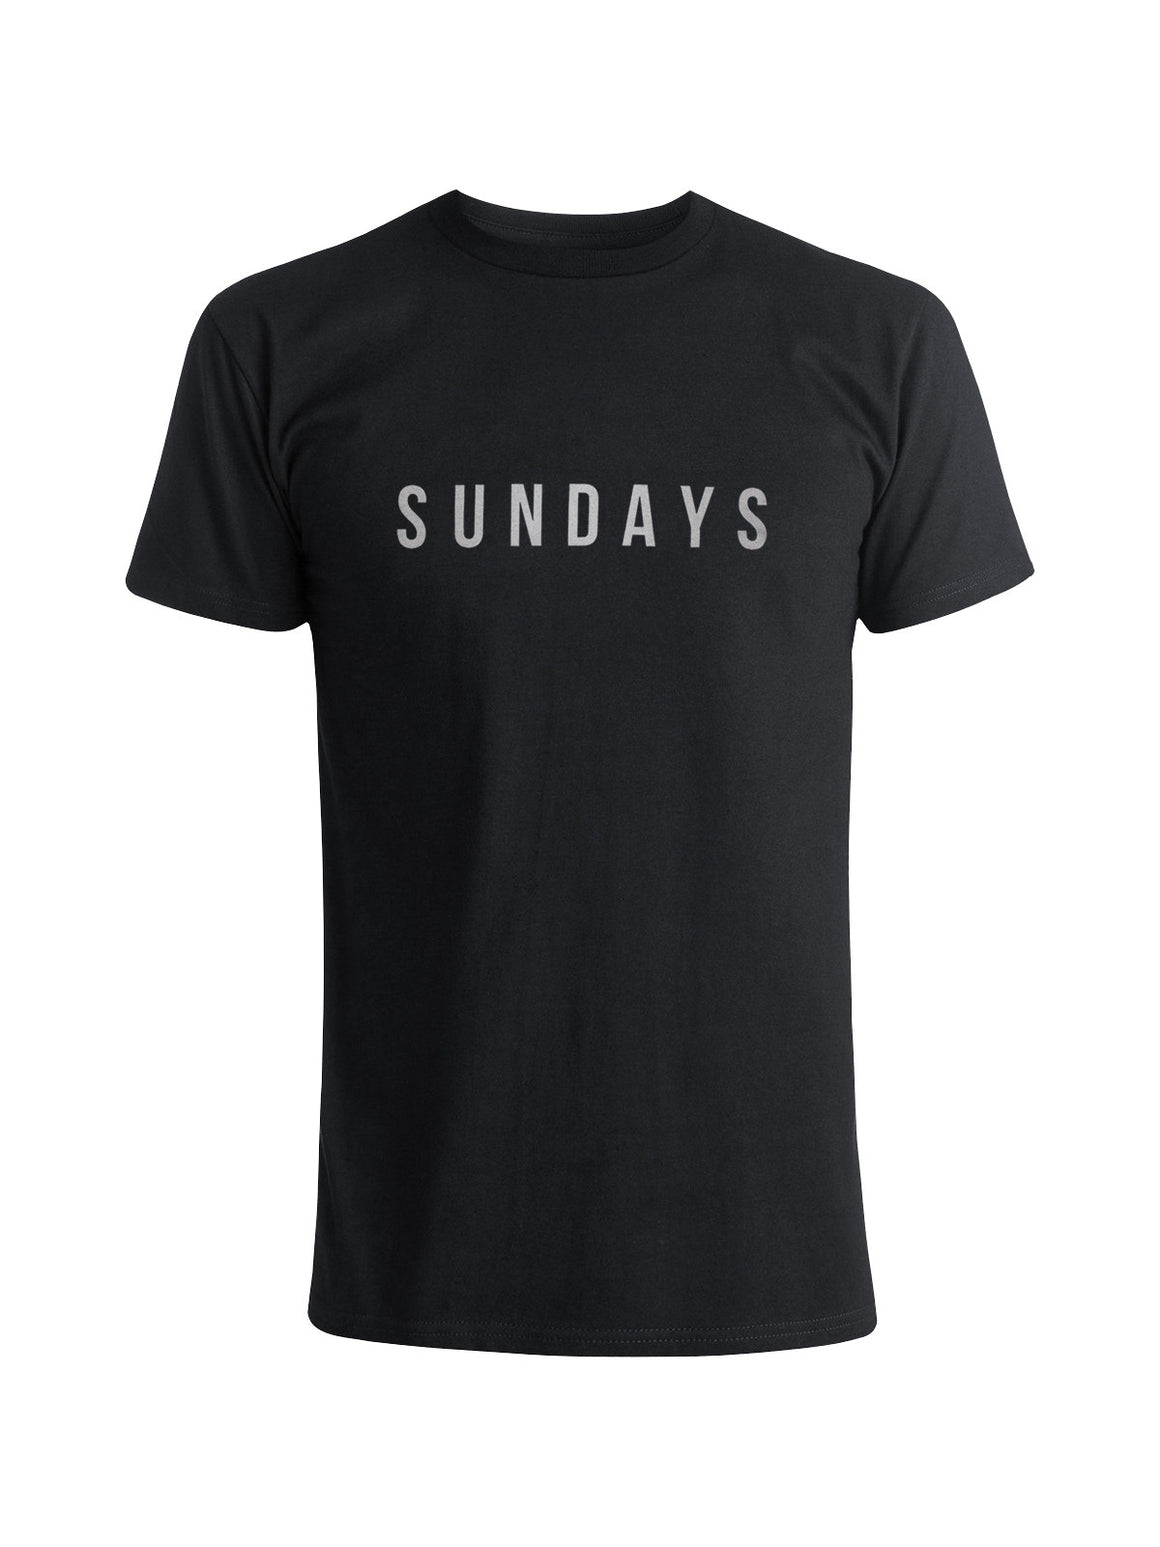 Sundays Tee Shirt - Black (Smoke)